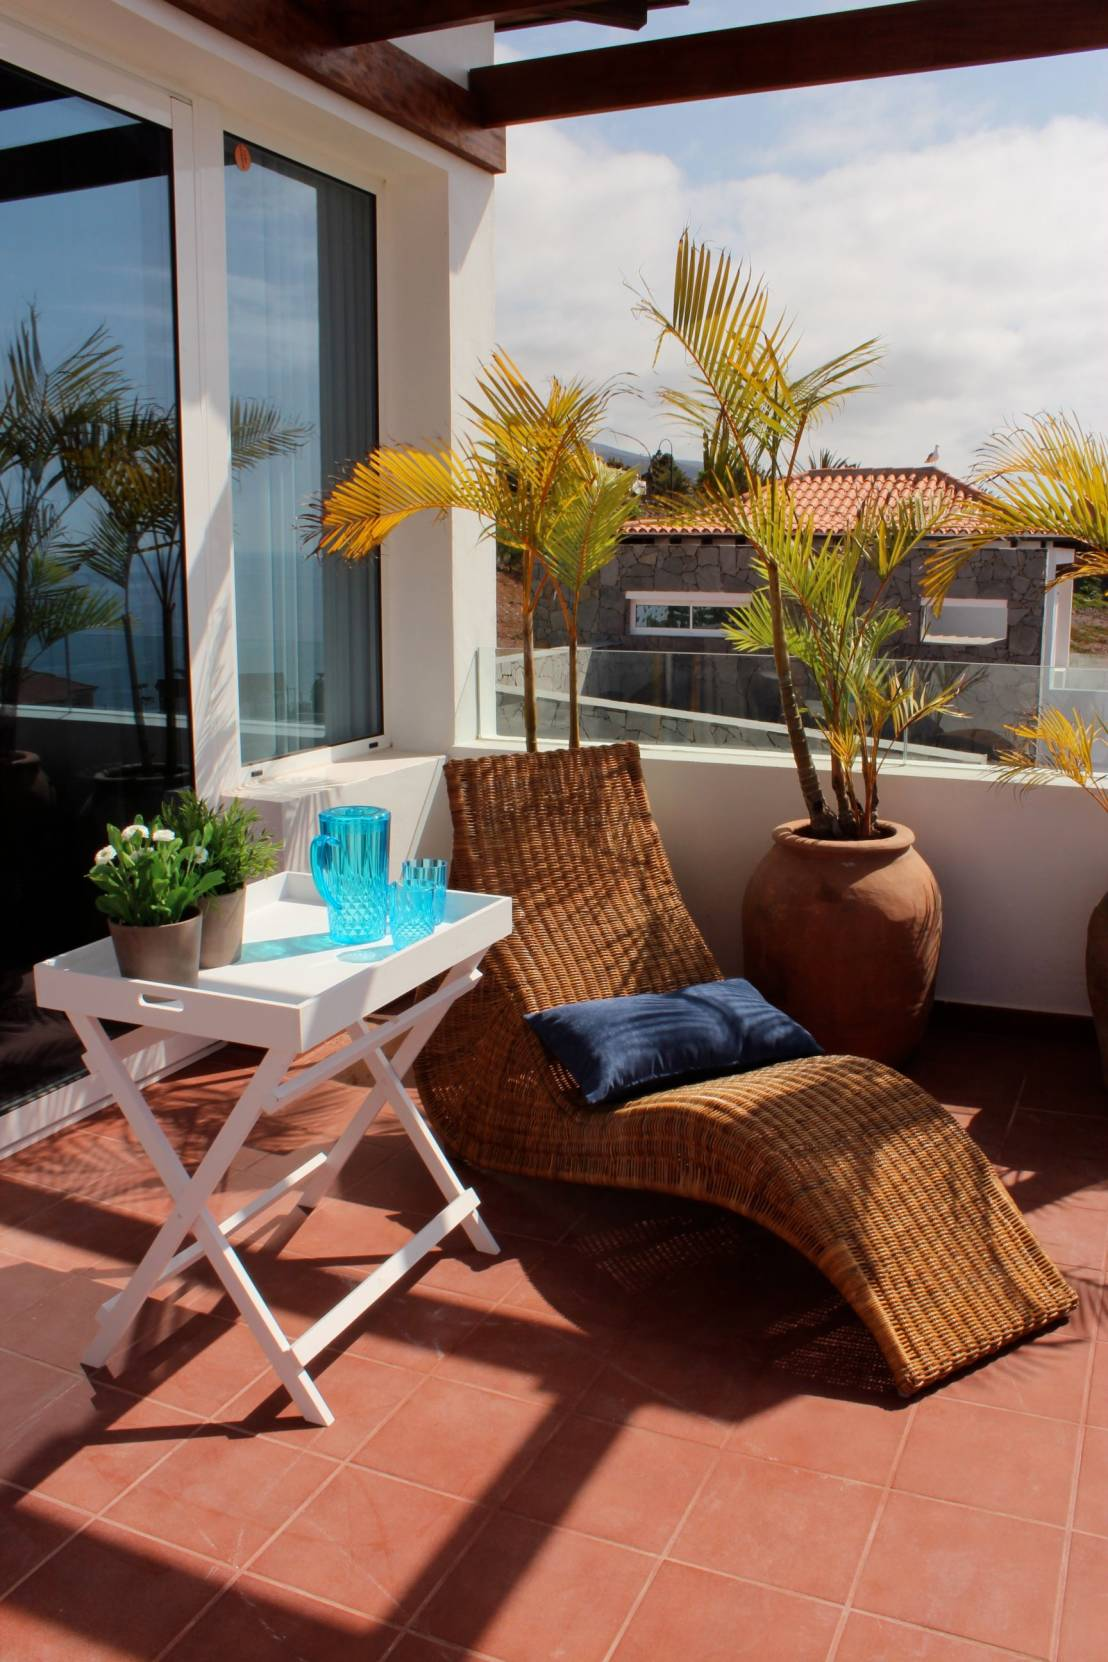 7 grandes ideas para balcones y terrazas peque as